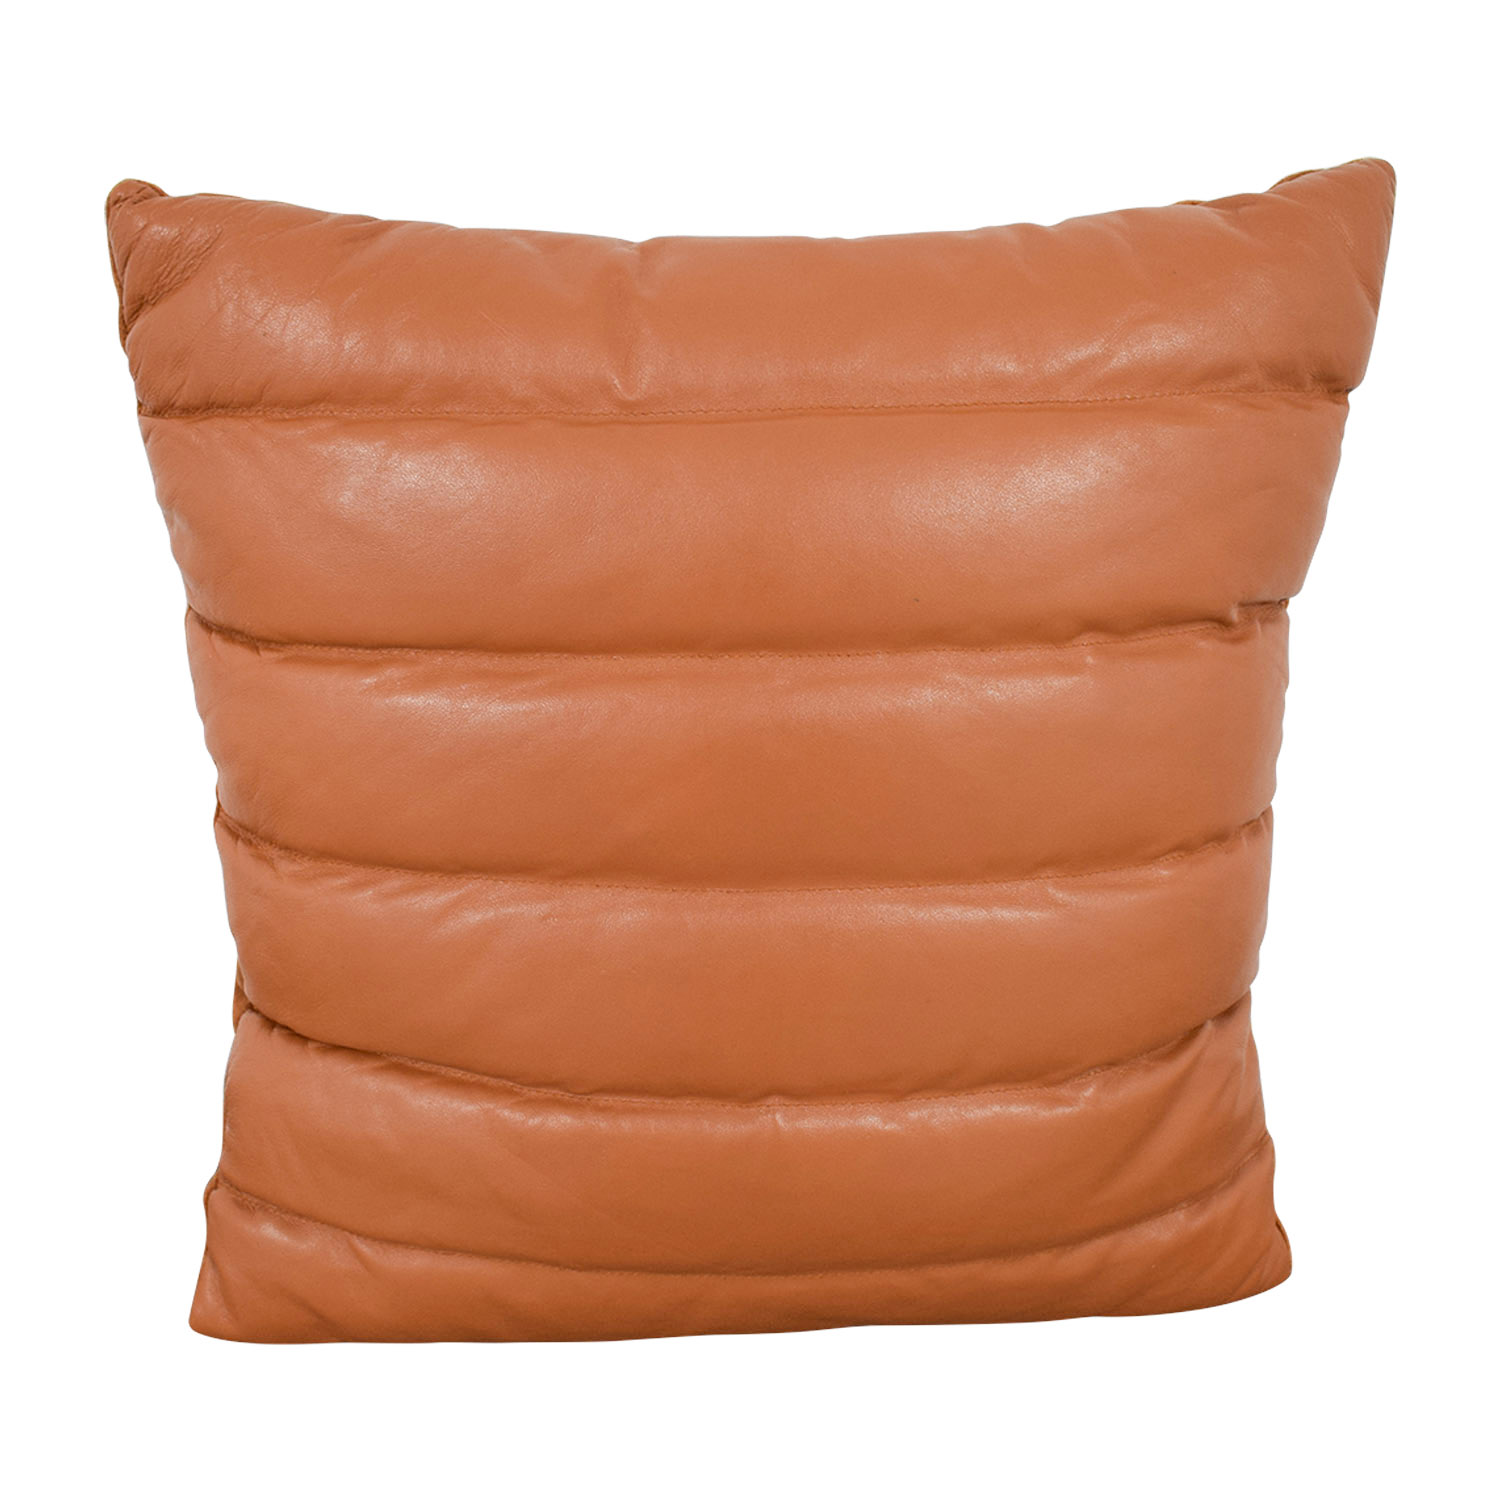 CB2 CB2 Izzy Saddle Leather Pillow discount